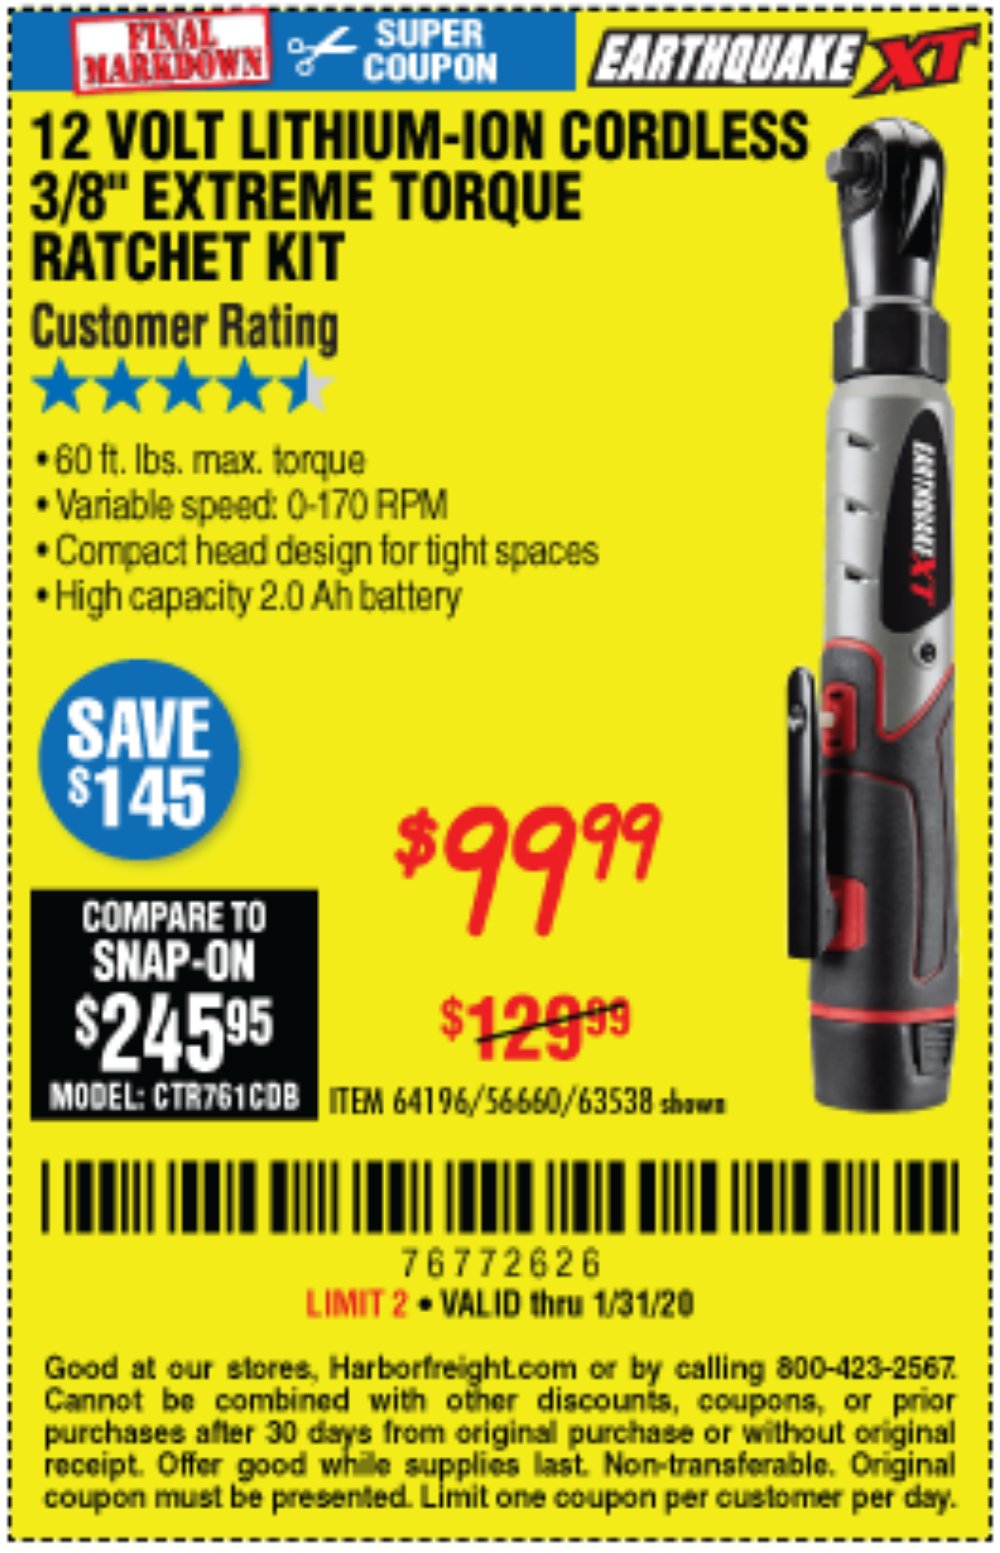 Harbor Freight Coupon, HF Coupons - Earthquake Xt 12 Volt, 3/8